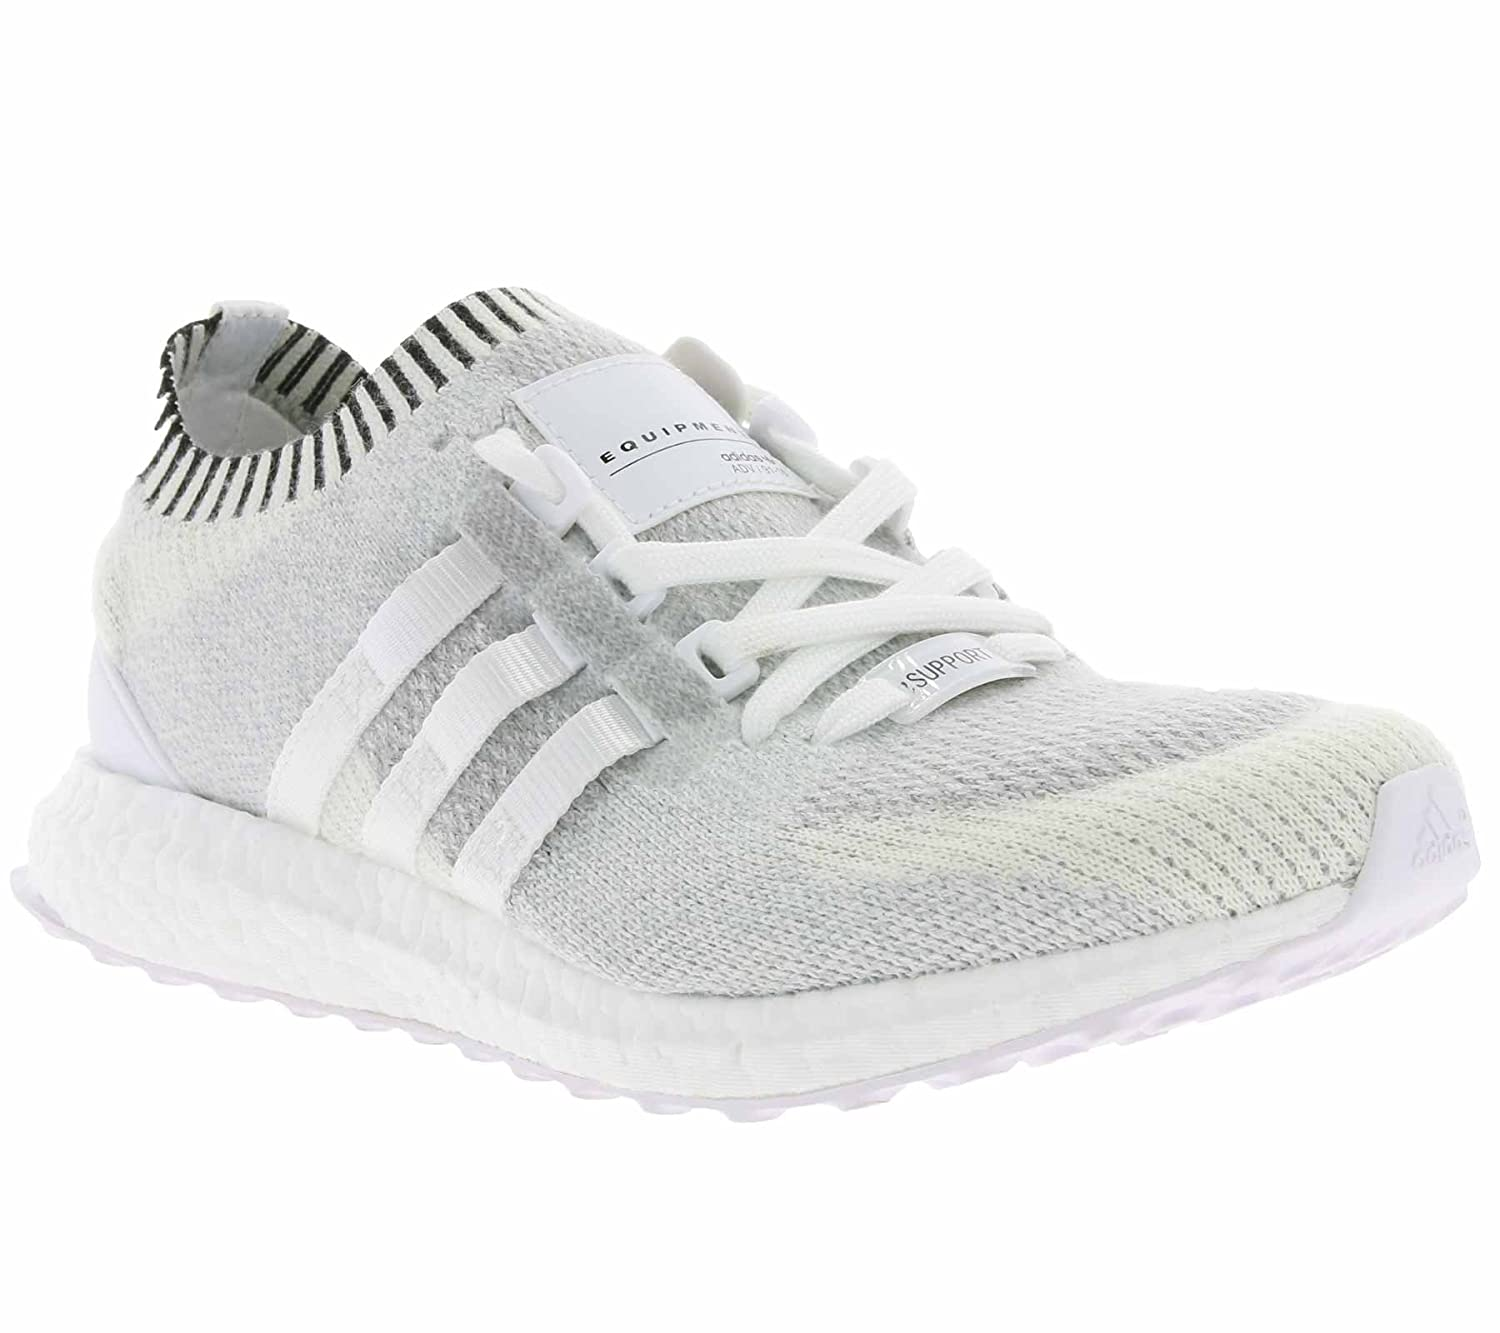 adidas Originals Men's Equipment Support Ultra Primeknit Trainers Vintage B06XGM5PZT 13 D(M) US|White